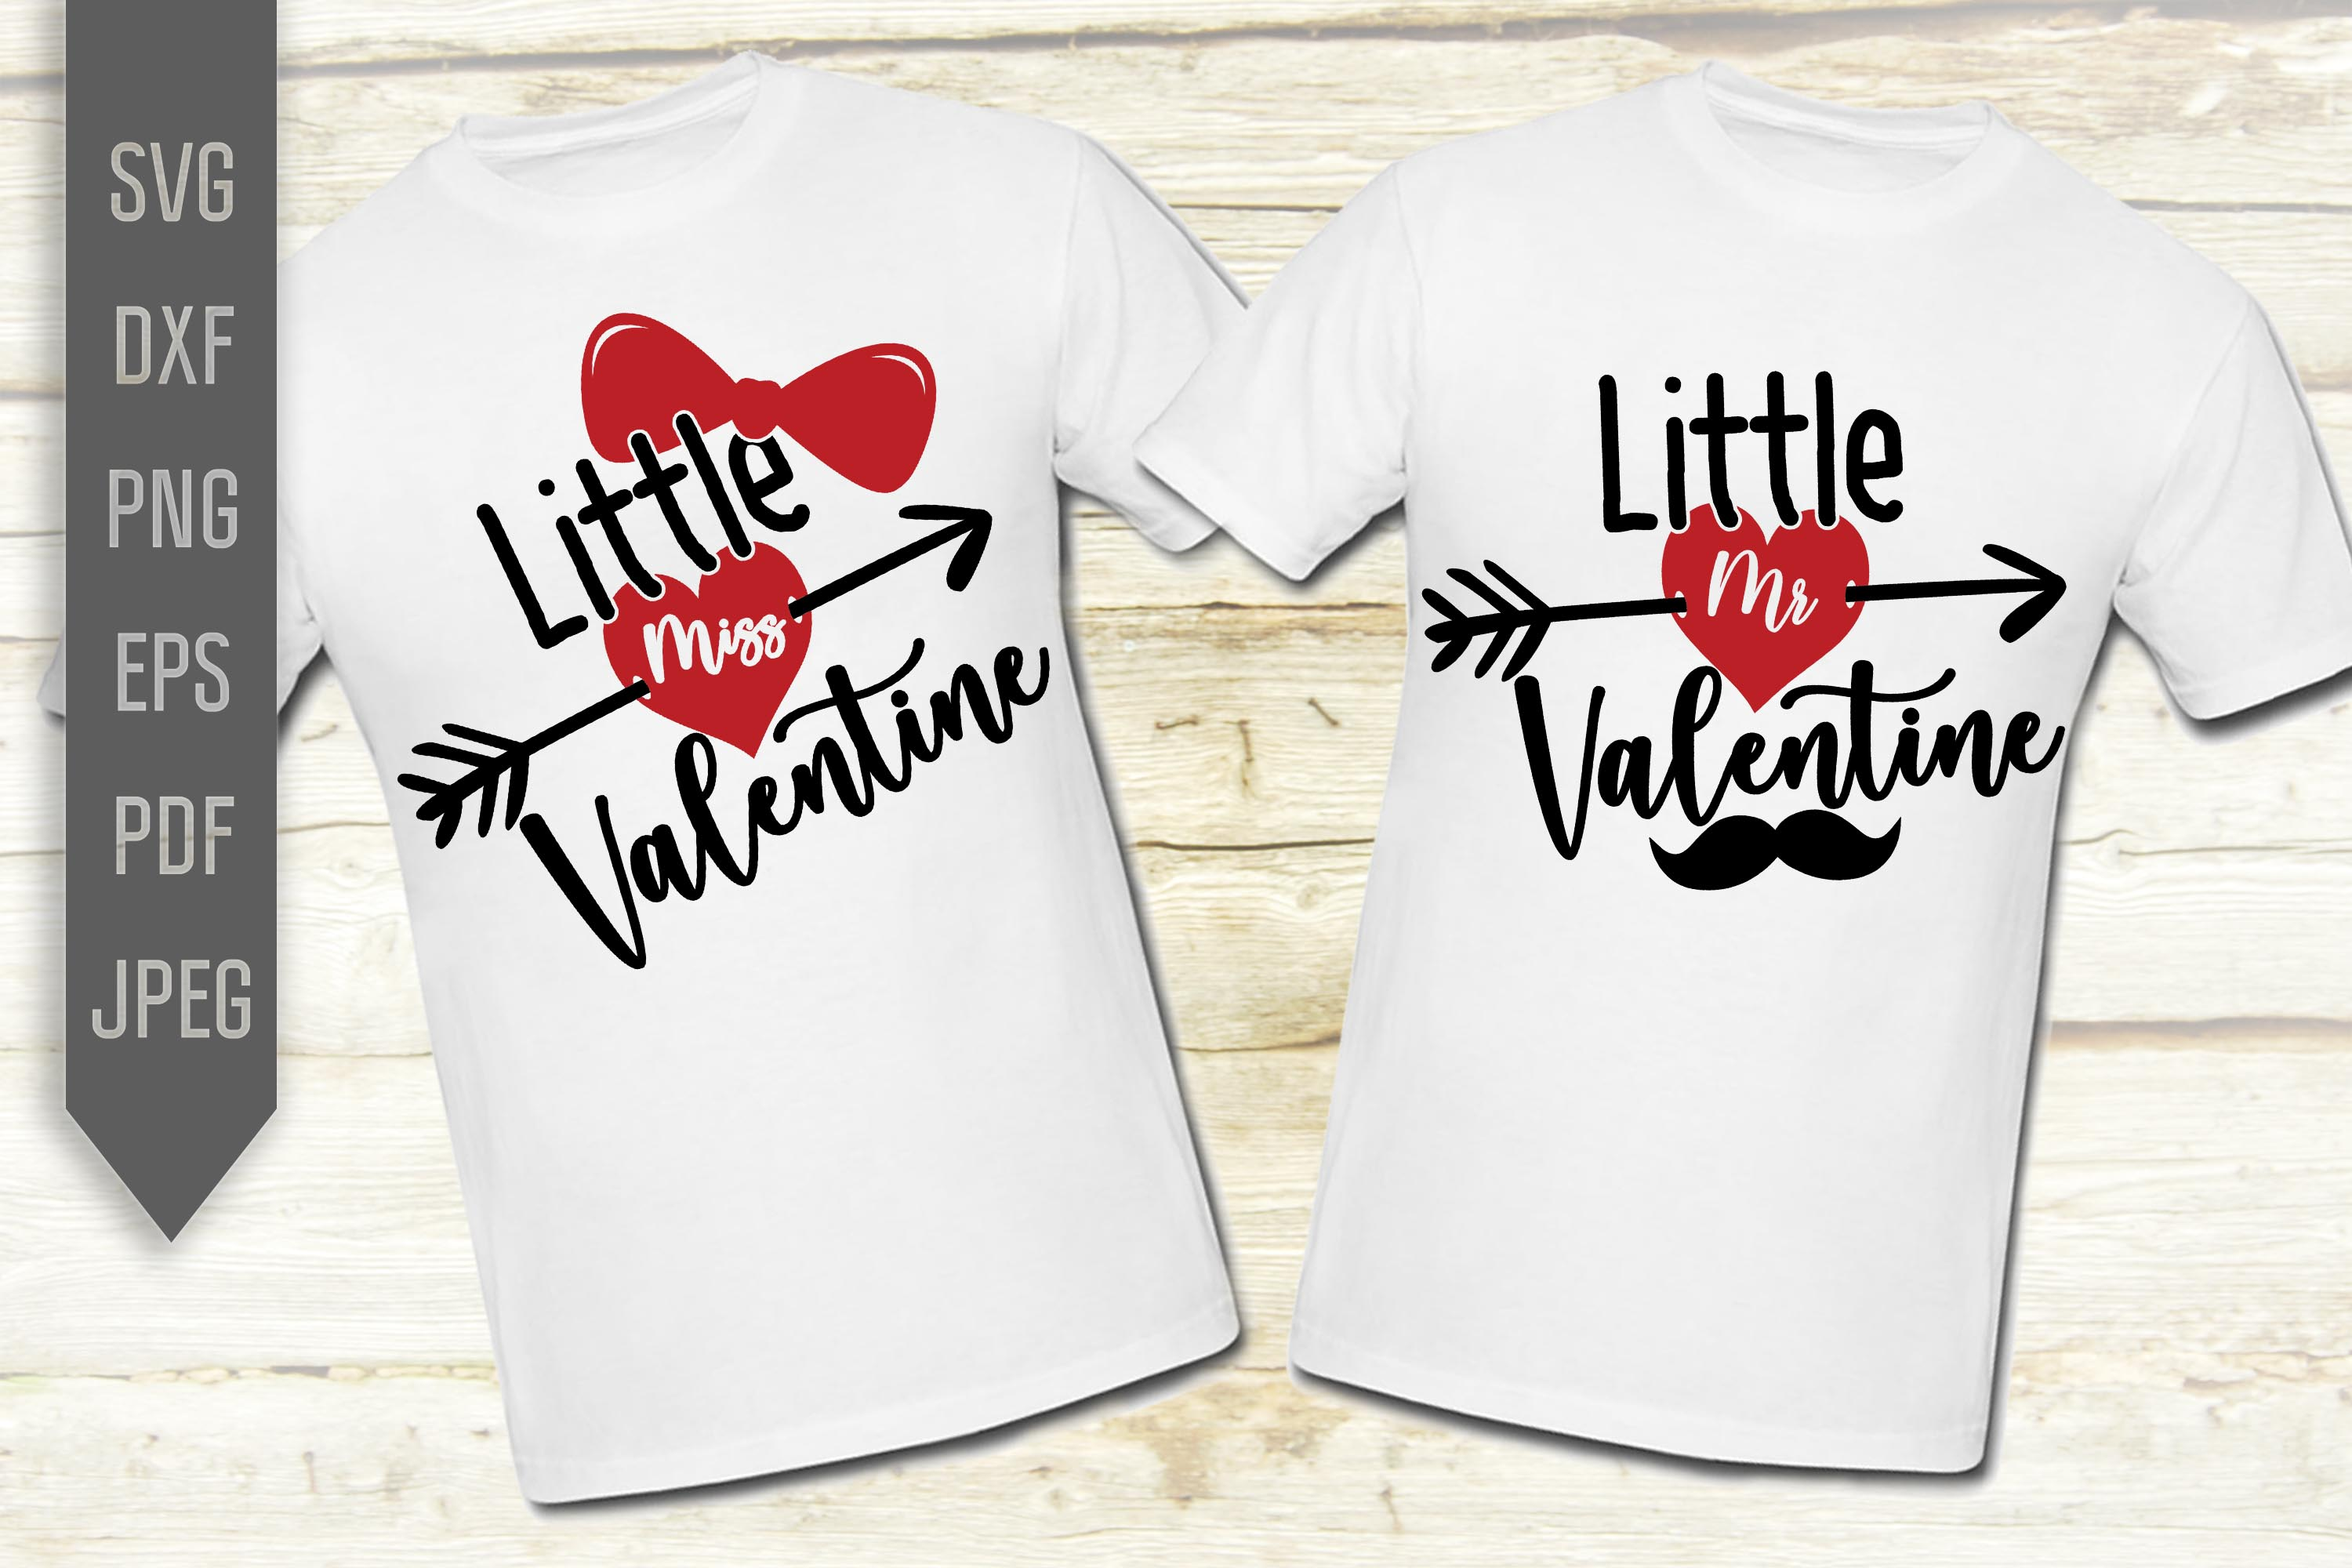 Download Free Little Miss And Mr Valentine Svg Crafts Graphic By Svglaboratory for Cricut Explore, Silhouette and other cutting machines.